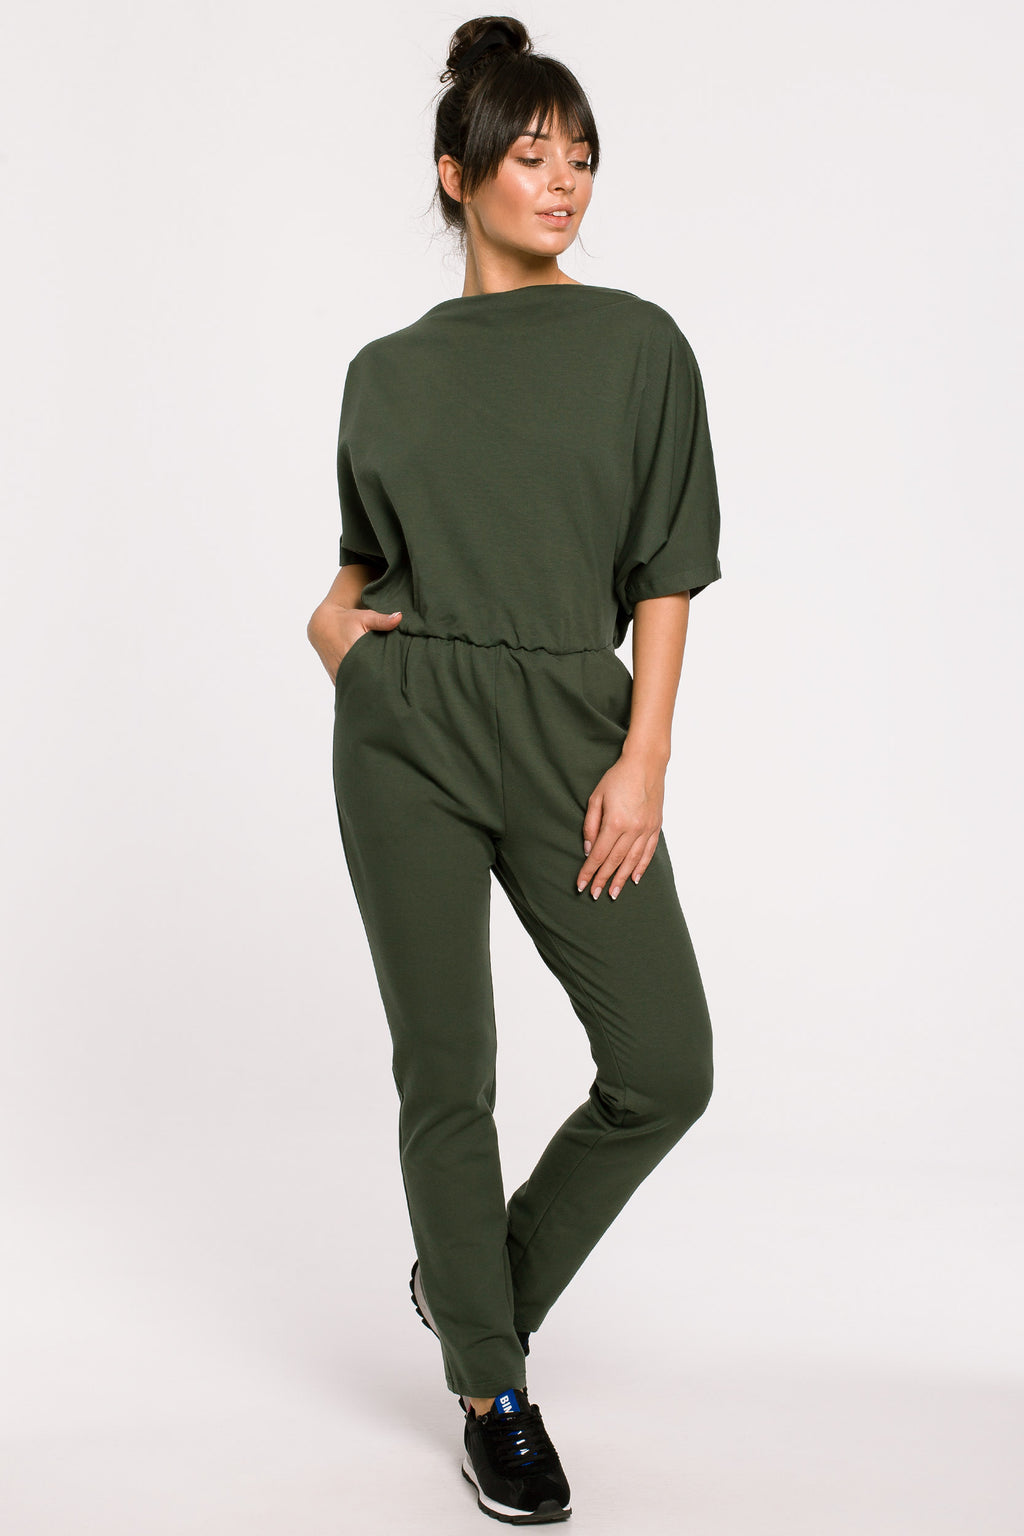 Khaki Jumpsuit With Kimono Top And Chino Trousers - So Chic Boutique